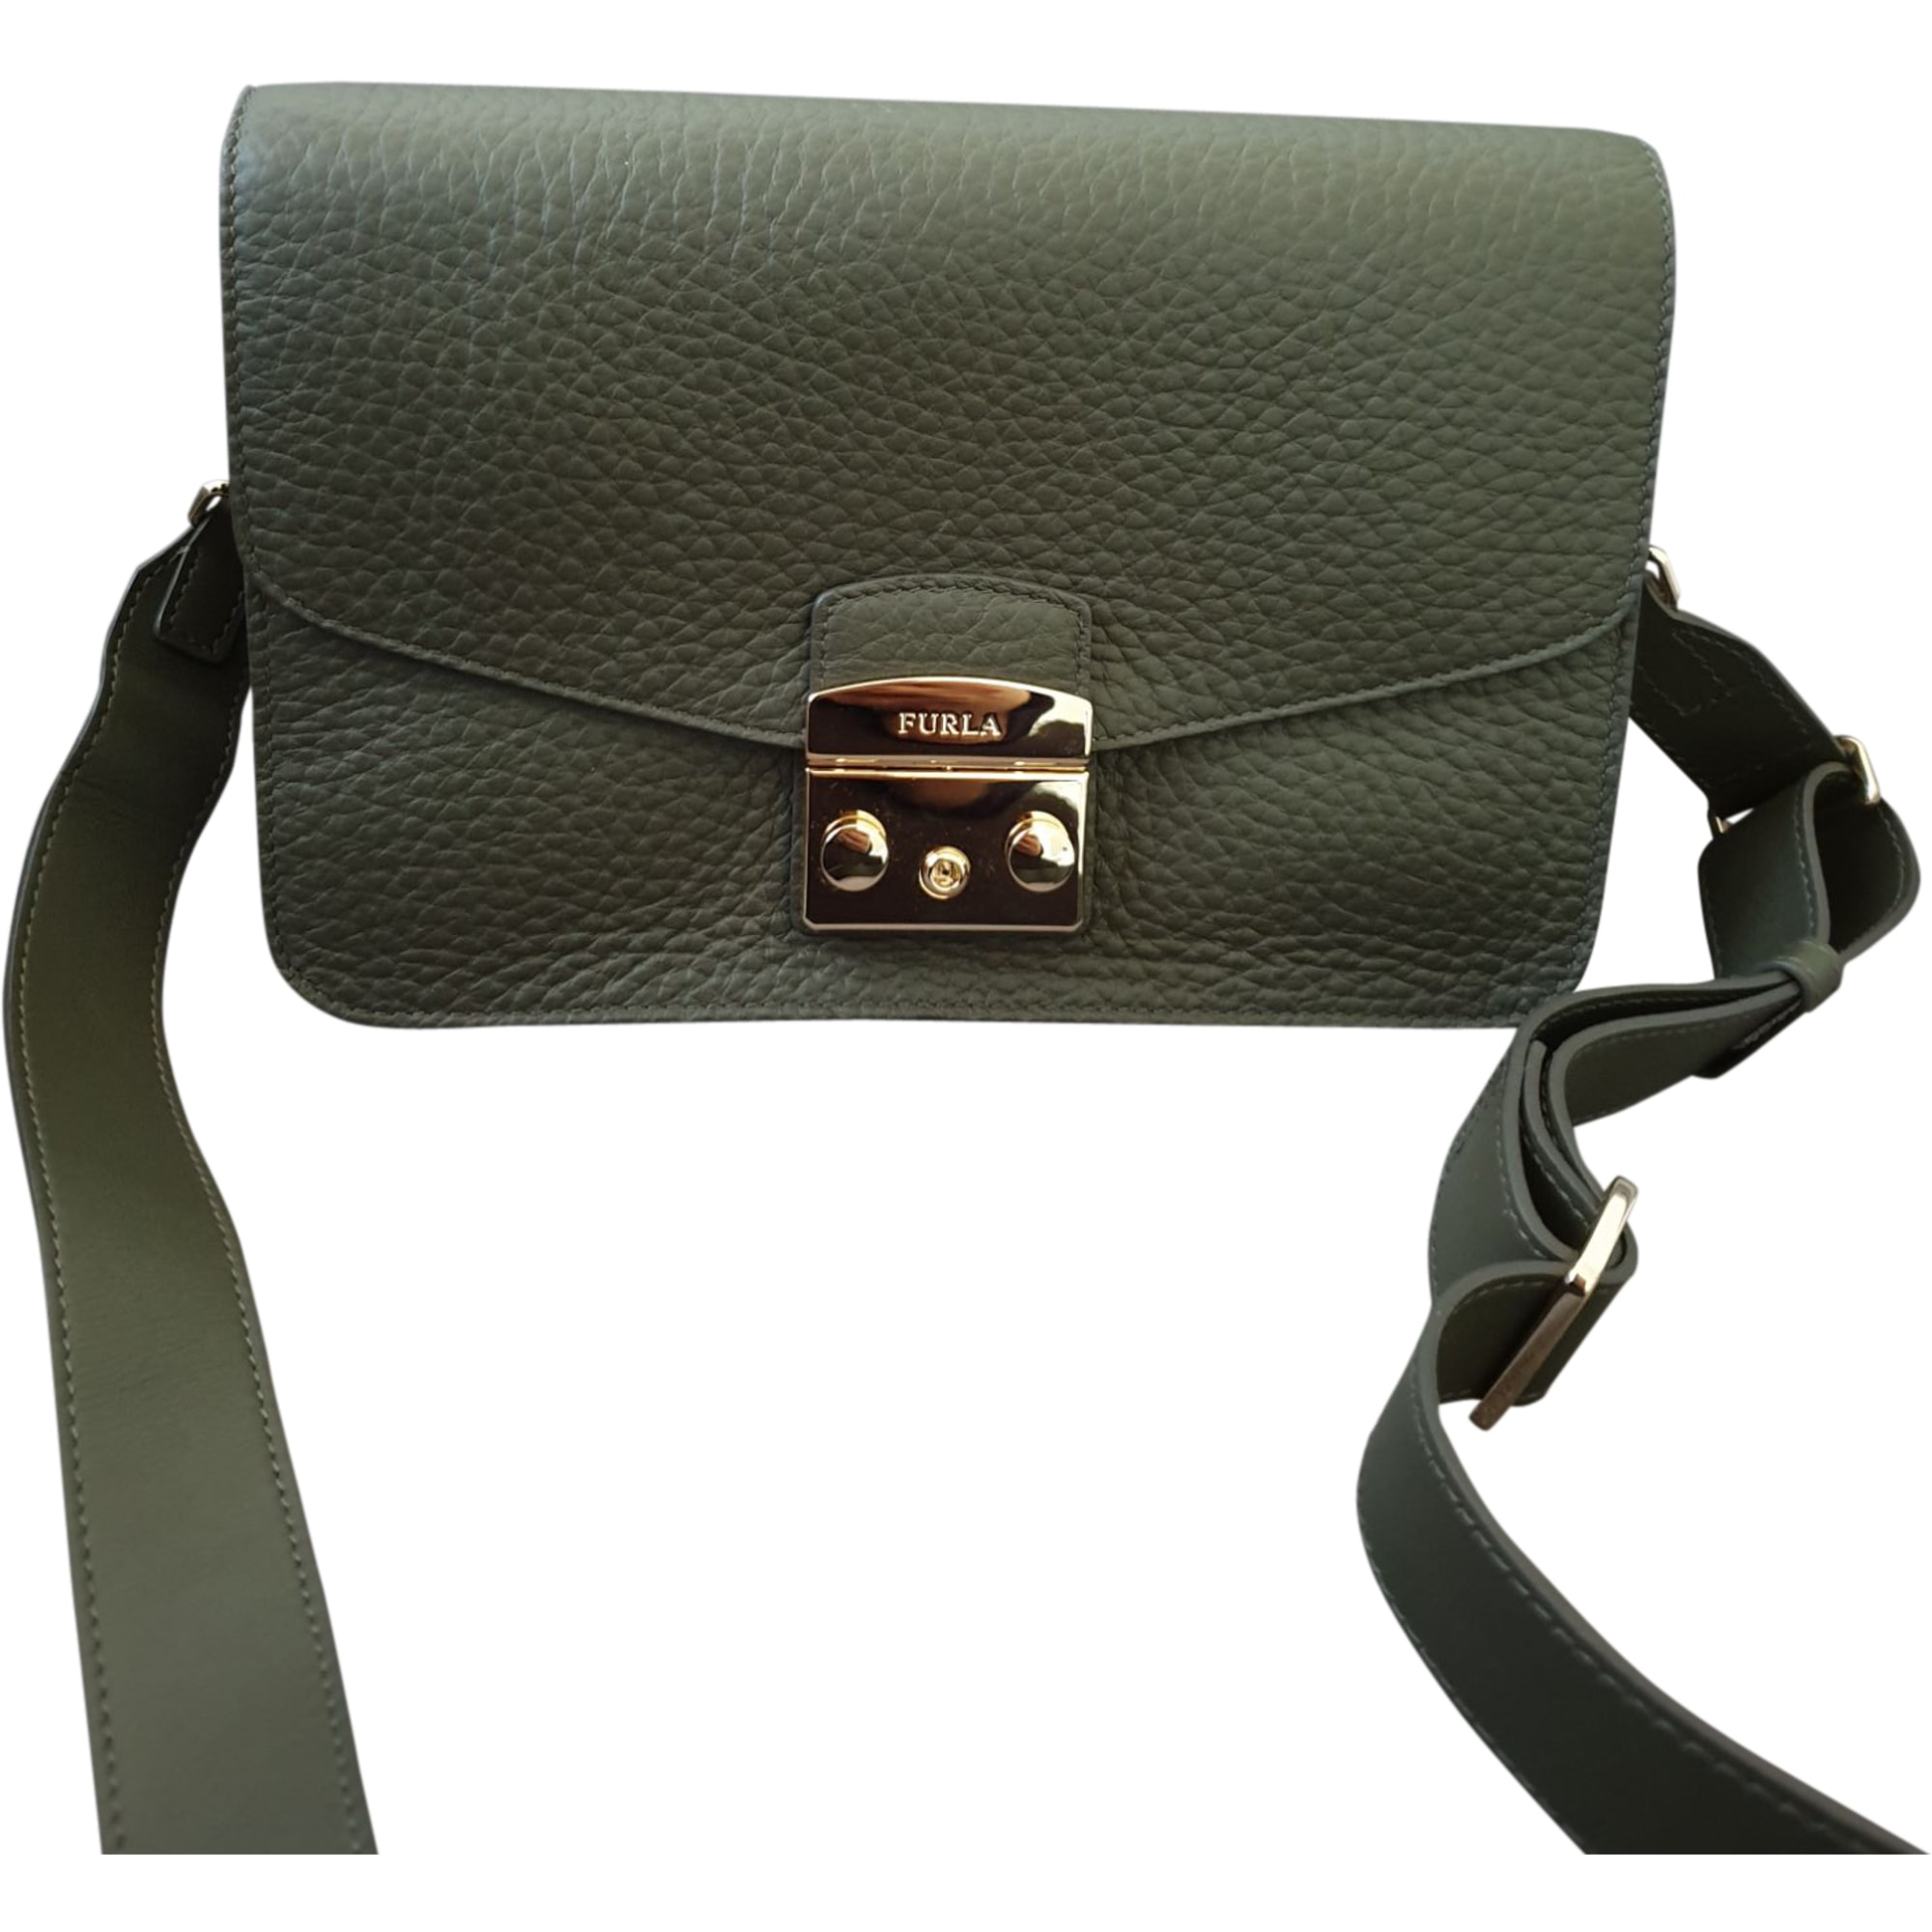 Leather Handbag FURLA Khaki